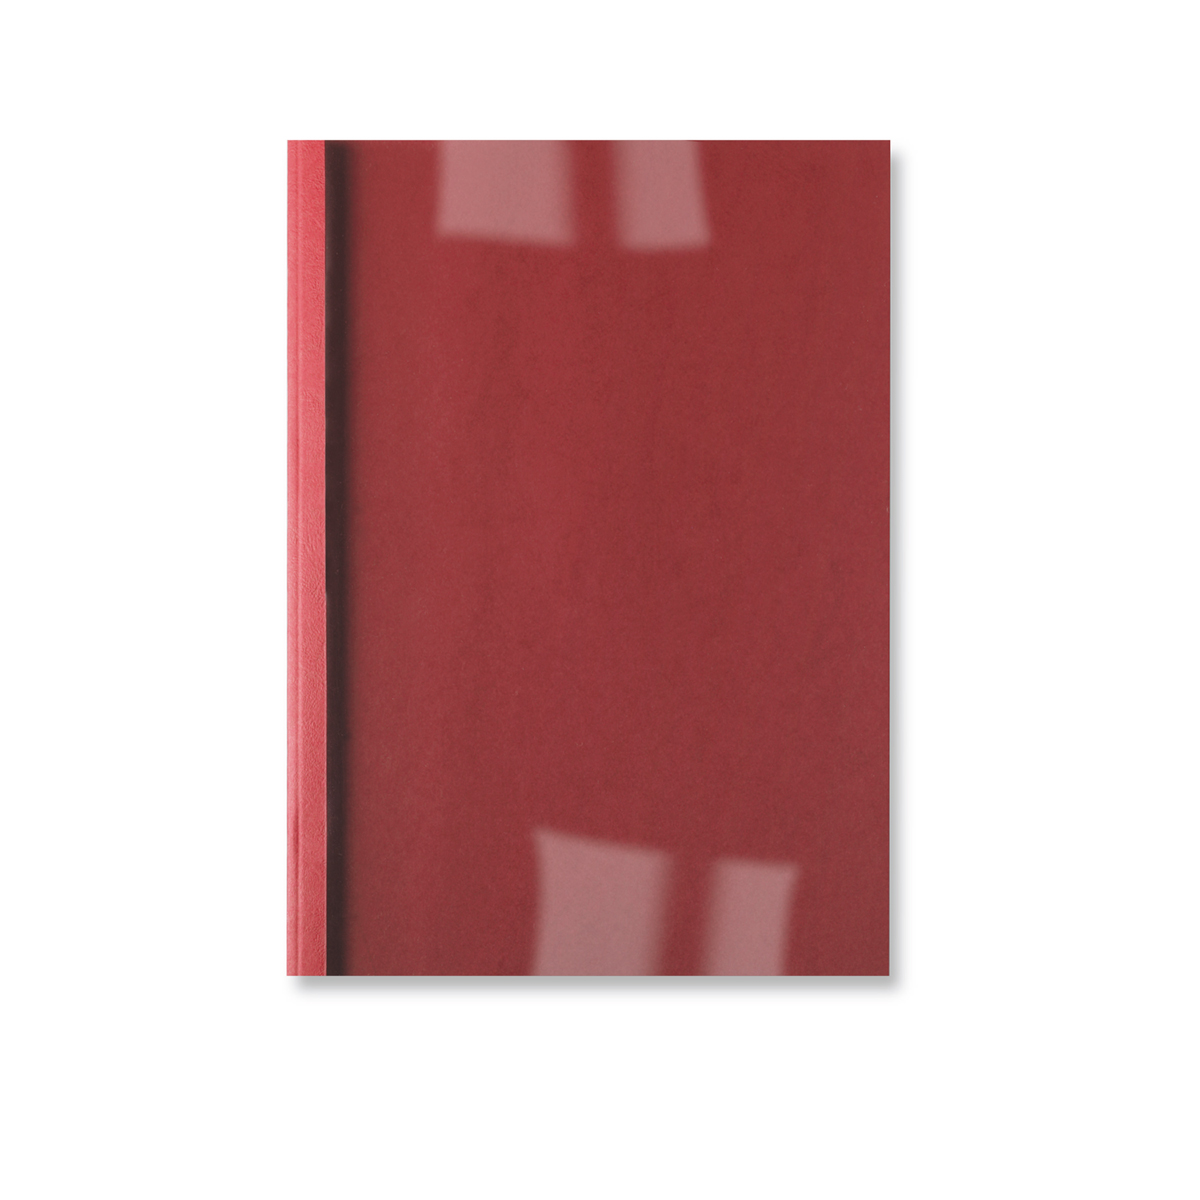 GBC IB451218 Leathergrain A4 Thermal Binding Covers Red Pack of 100